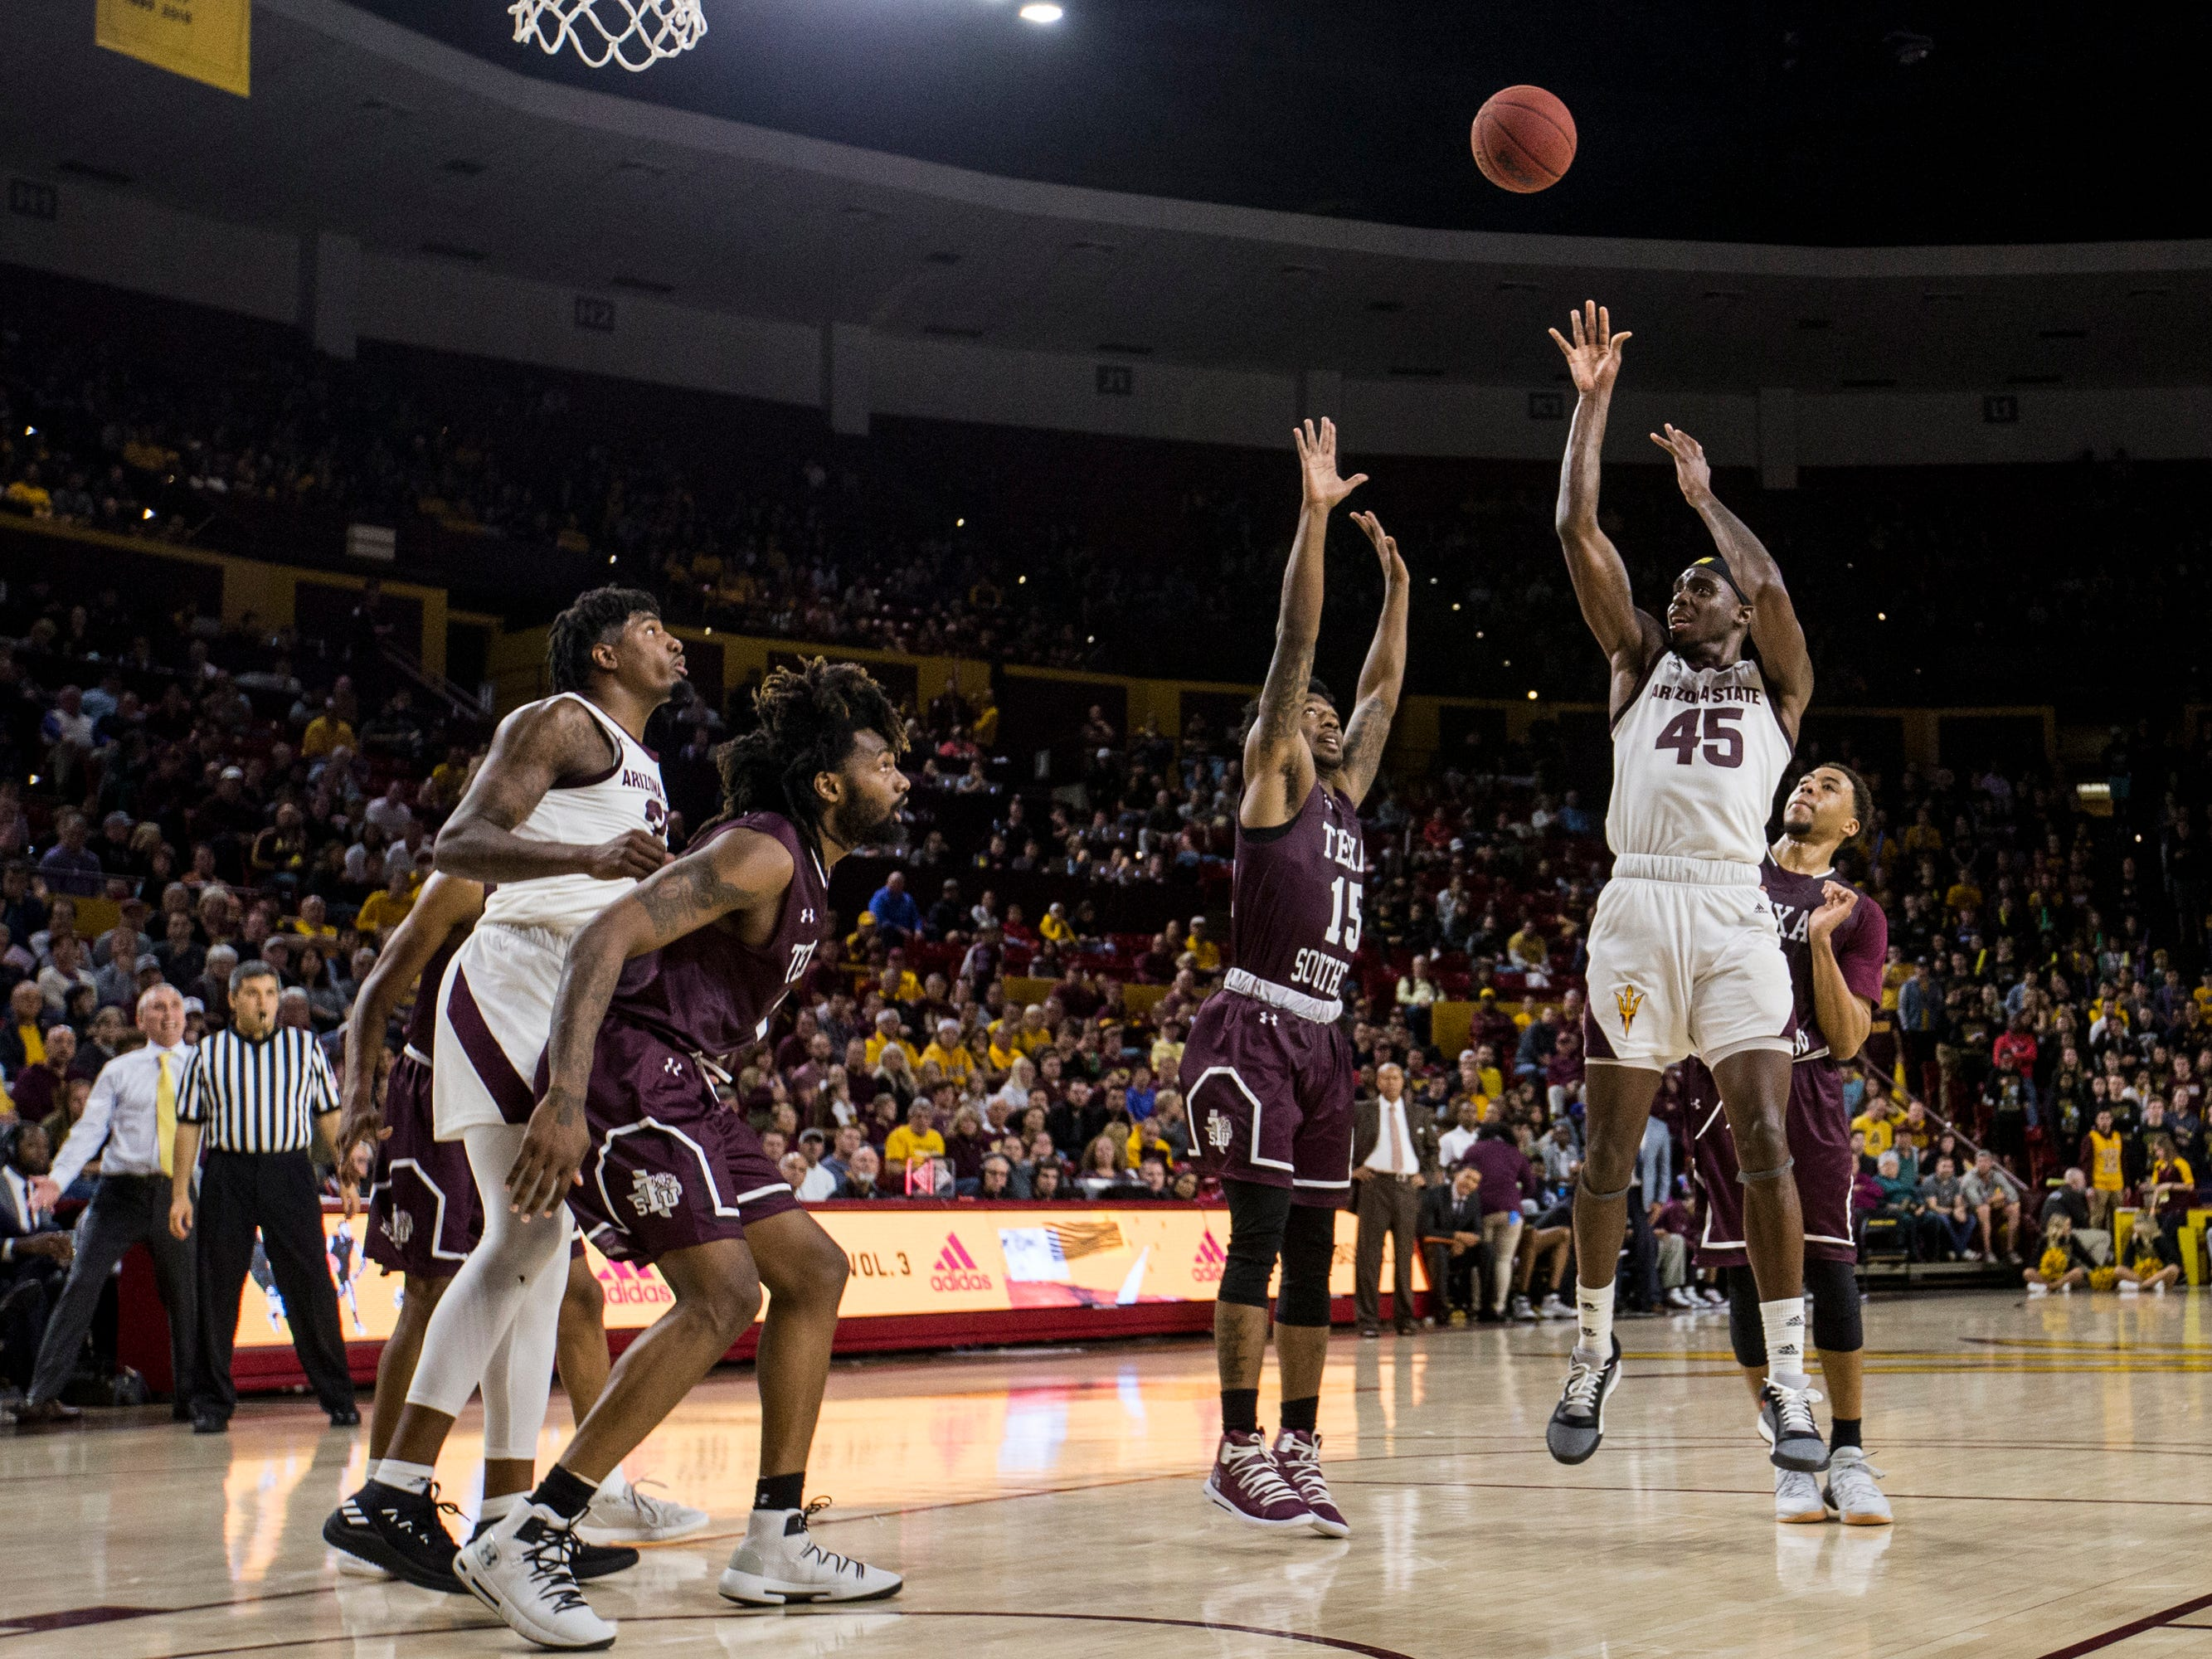 Arizona State's Zylan Cheatham attempts a shot against Texas Southern in the second half on Saturday, Dec. 1, 2018, at Wells Fargo Arena in Tempe, Ariz.